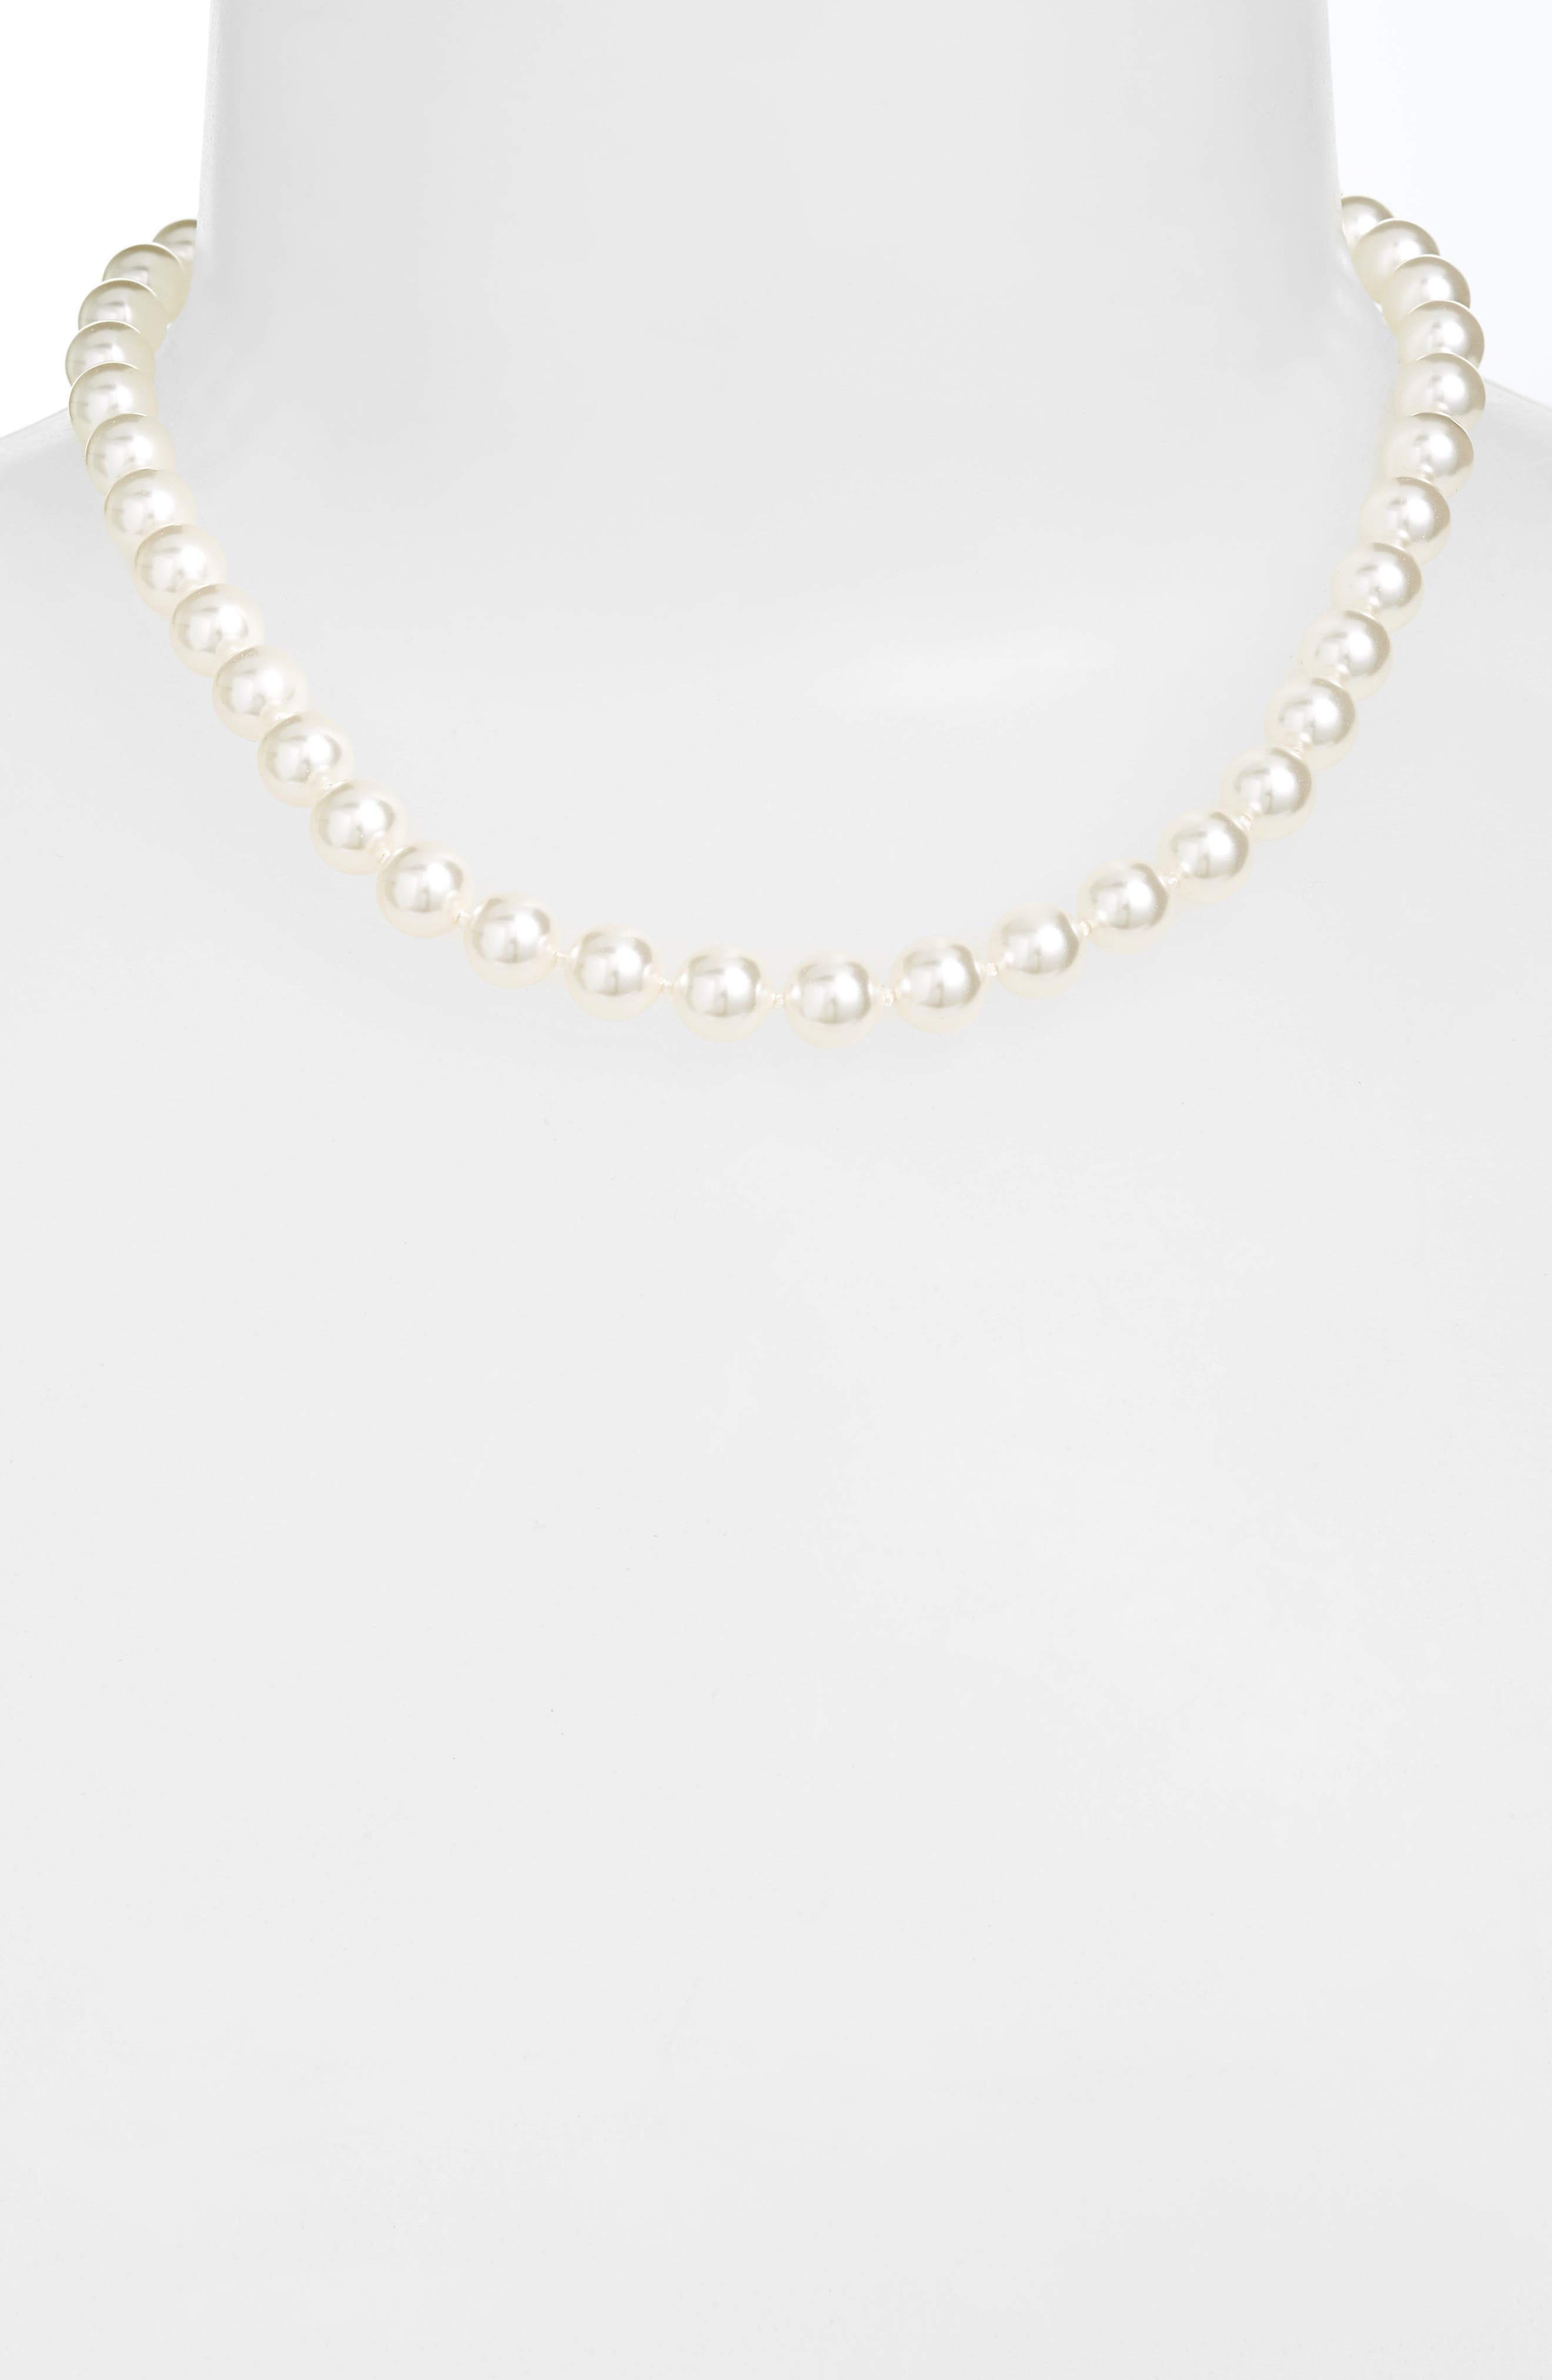 16-Inch Glass Pearl Strand Necklace,                             Alternate thumbnail 2, color,                             100